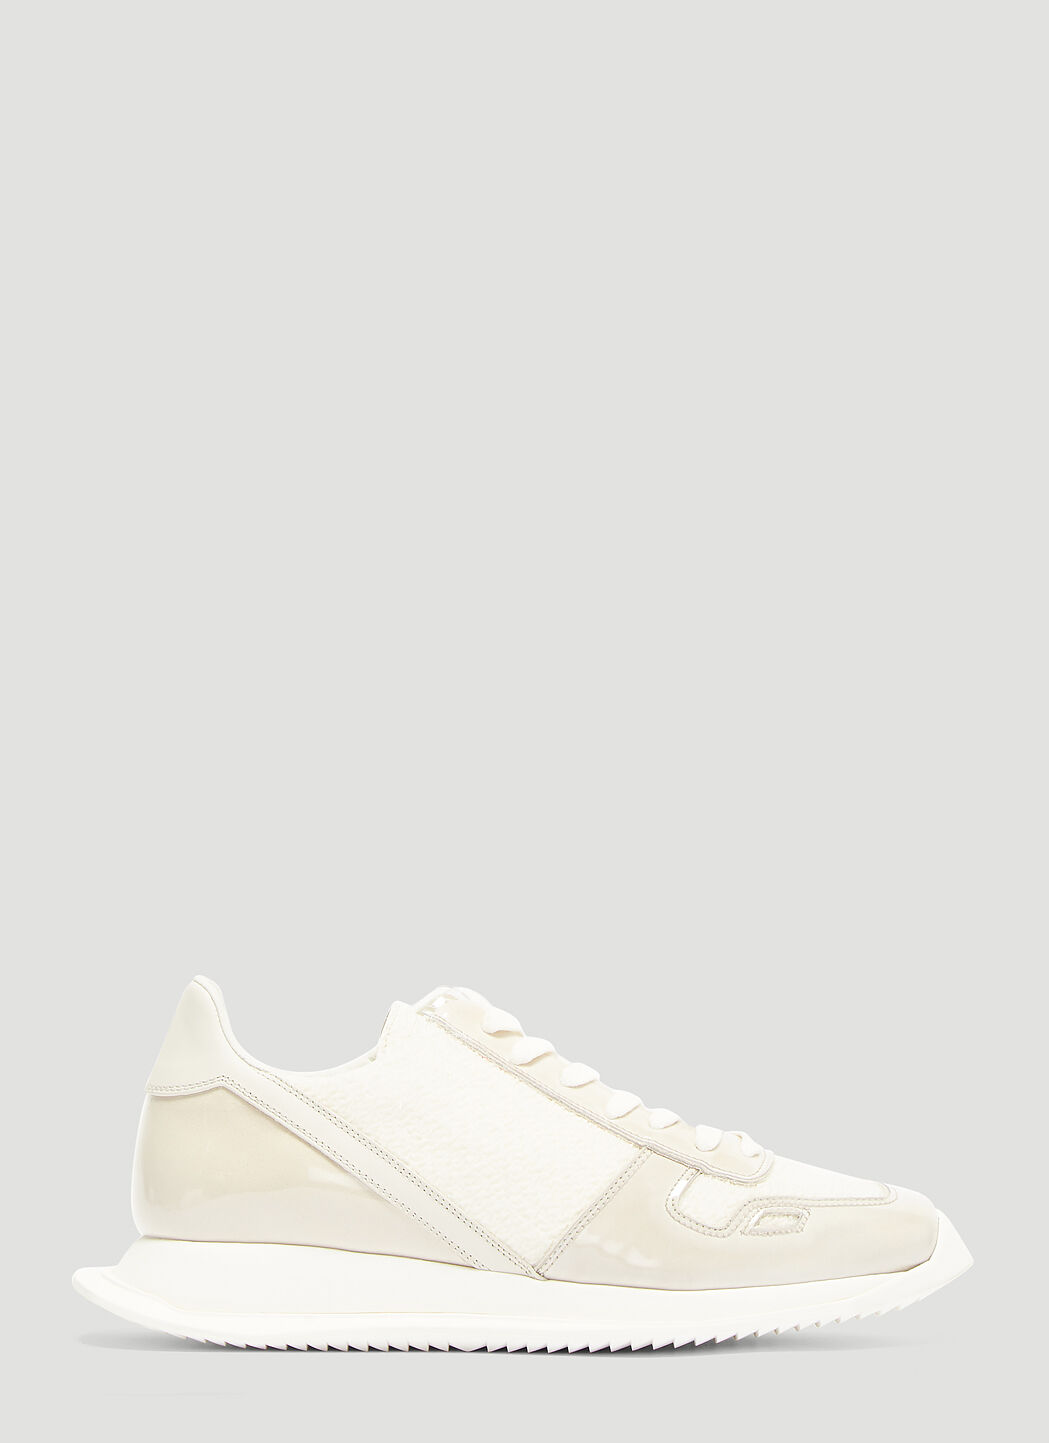 Rick Owens Oblique Hairy Sneakers in